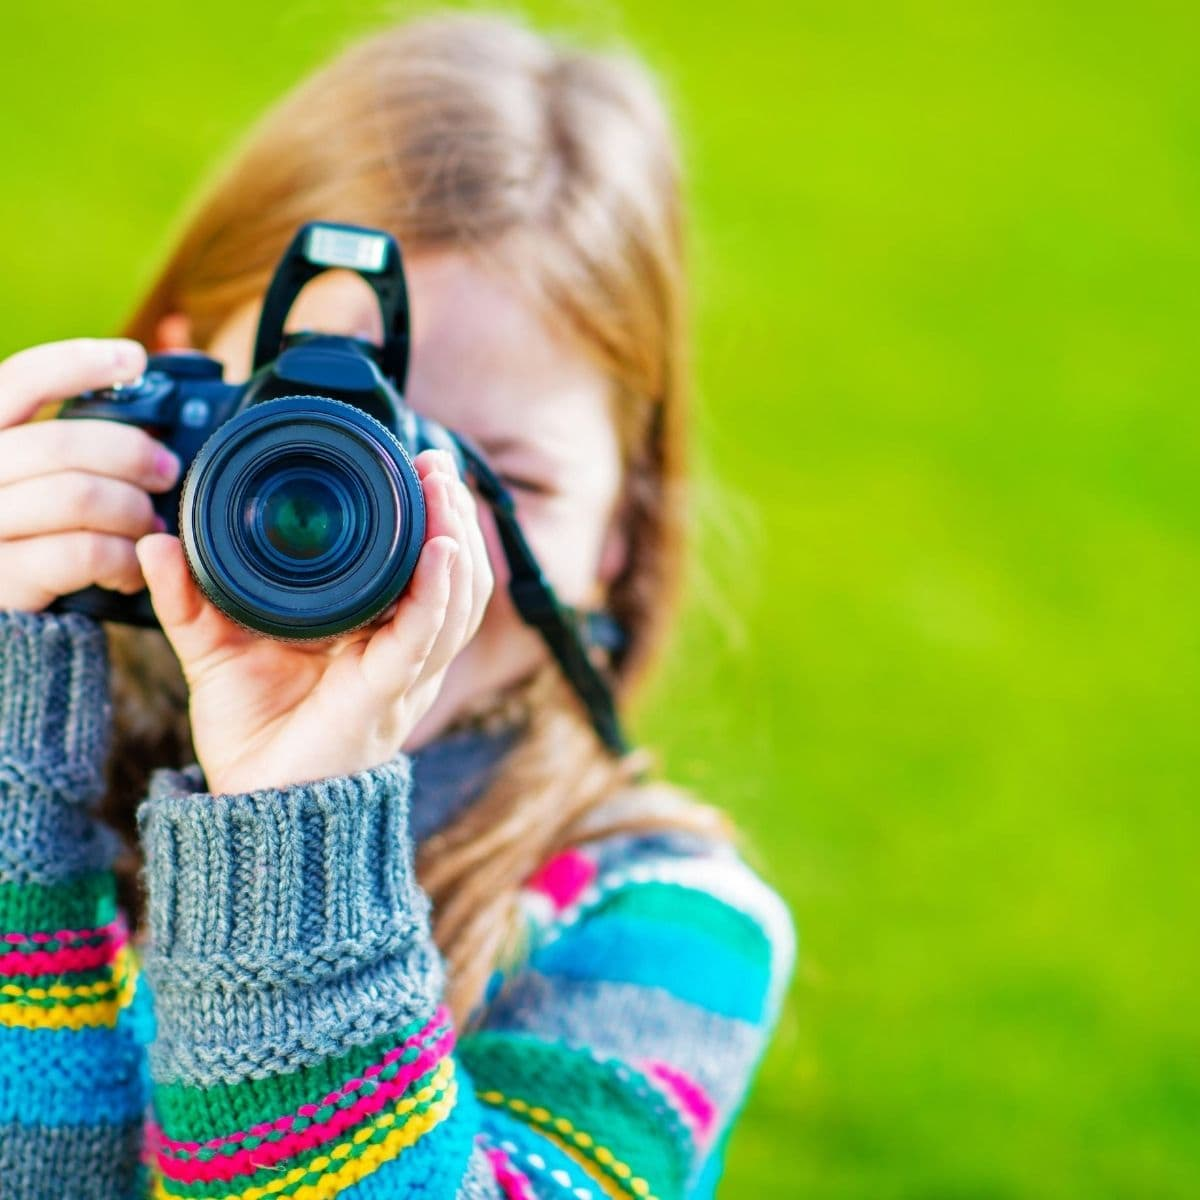 A girl outdoors with a camera taking pictures